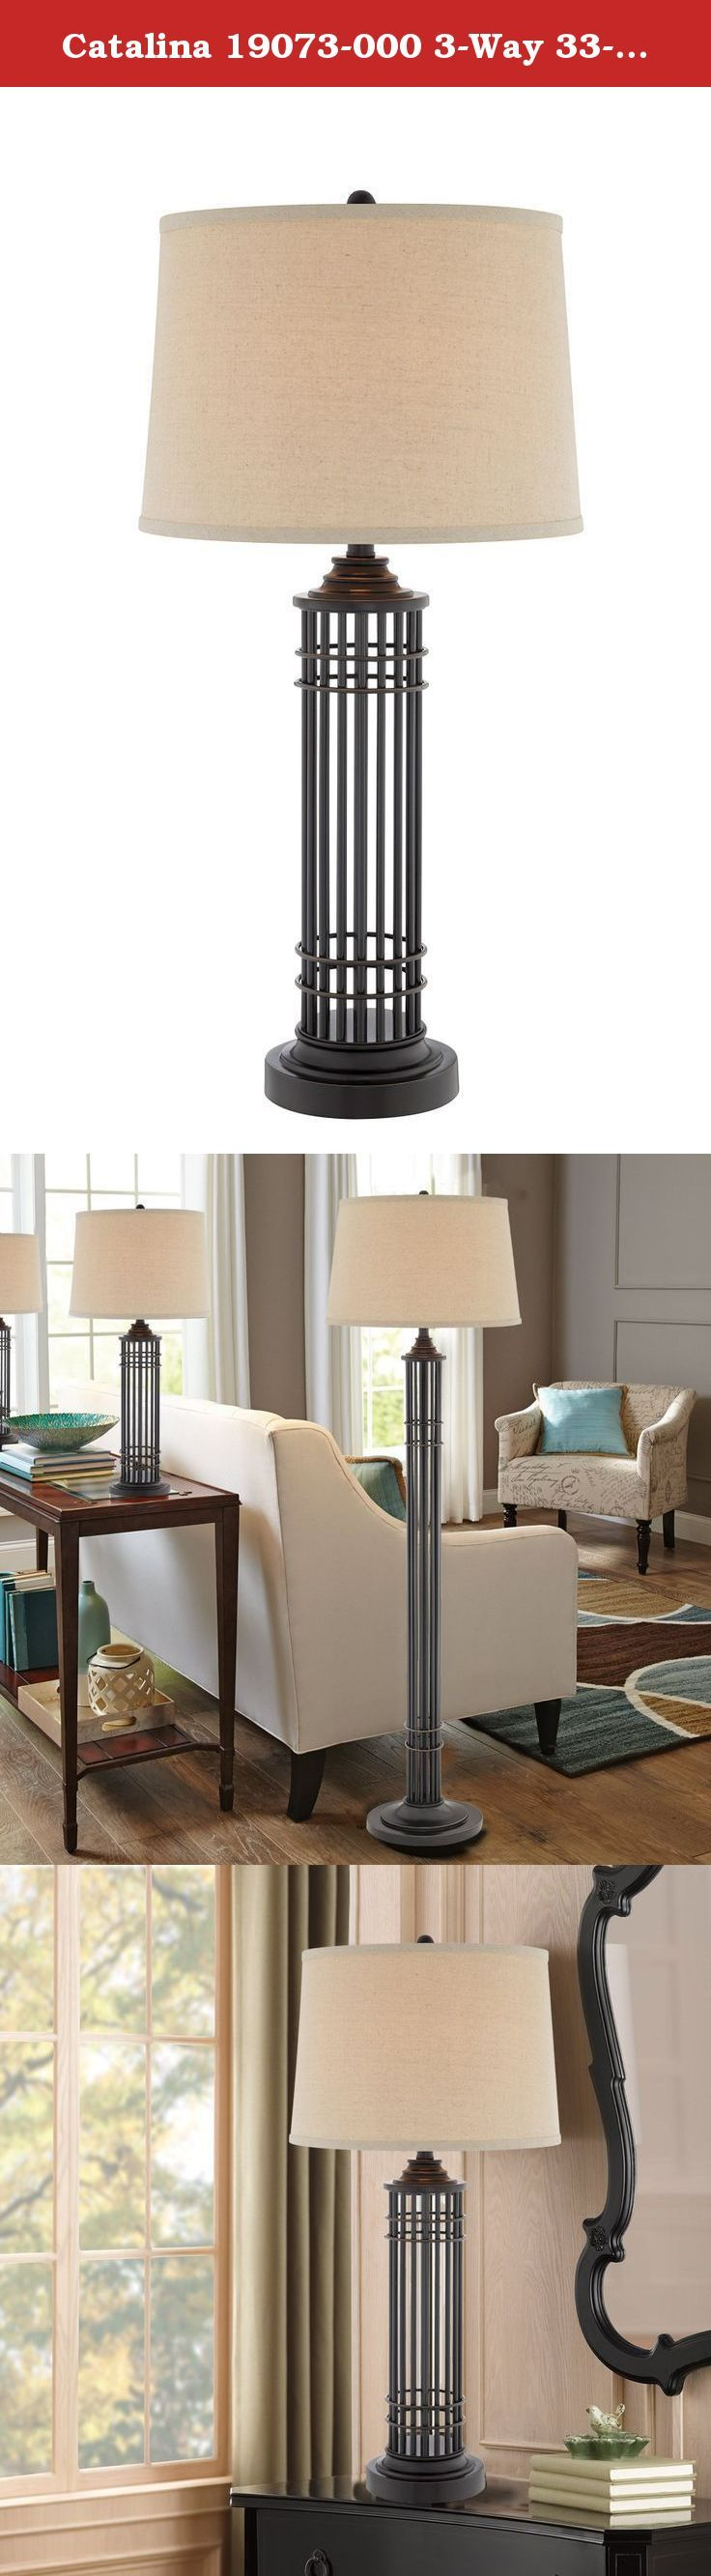 Catalina 19073-000 3-Way 33-Inch Open Cage Metal Table Lamp and Modified Drum Shade. The Catalina 19073-000 3-Way Table Lamp offers a stylish transitional design. The metal table lamp features an open cage design with an oil-rubbed bronze finish and modified drum shade. This lamp is rated for 120-volts and uses a 3-way 150-watt incandescent bulb or 3-way E26 CFL spiral bulb. Bulb not included. The light source is soft and the illumination is pointed downwards. Table lamps are often used…